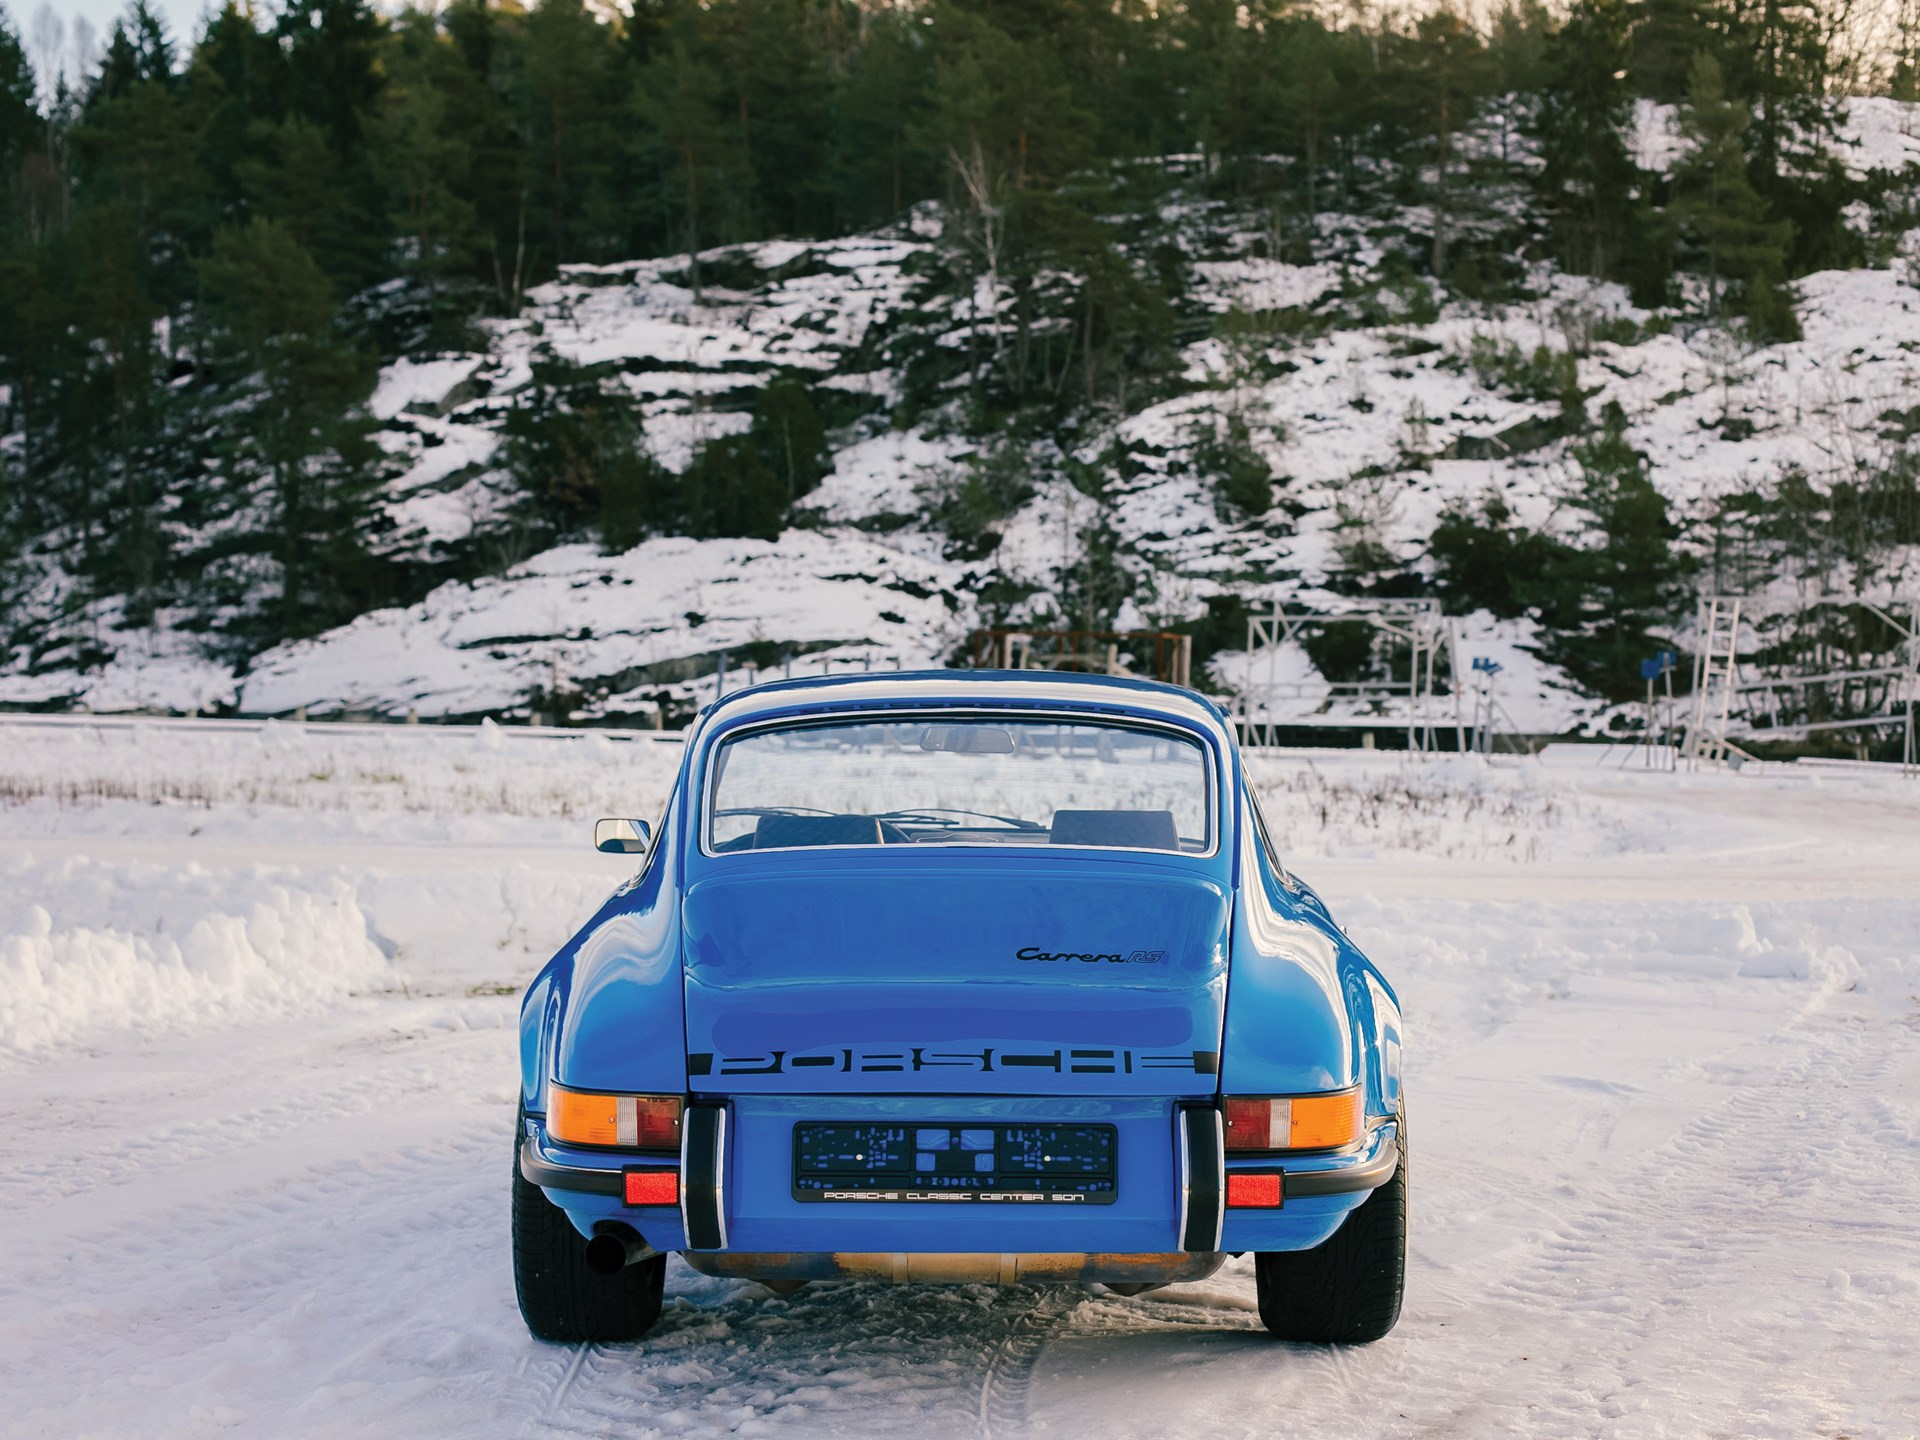 1973 Porsche 911 Carrera RS 2.7 Touring